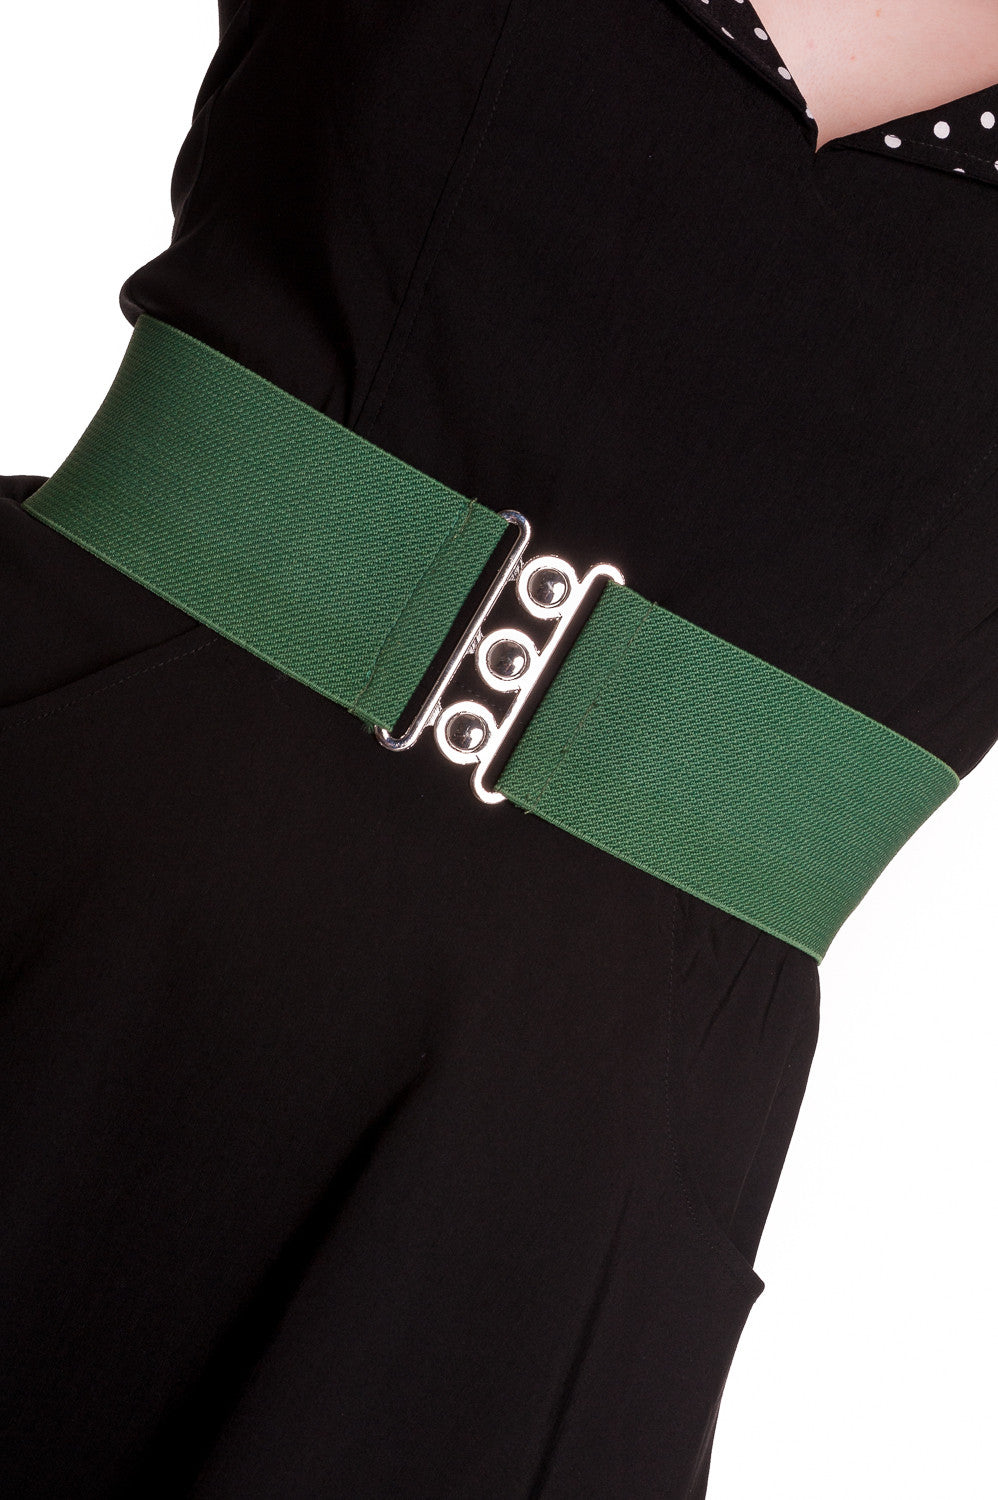 Retro Stretch Belt in Green (M ONLY) - Natasha Marie Clothing